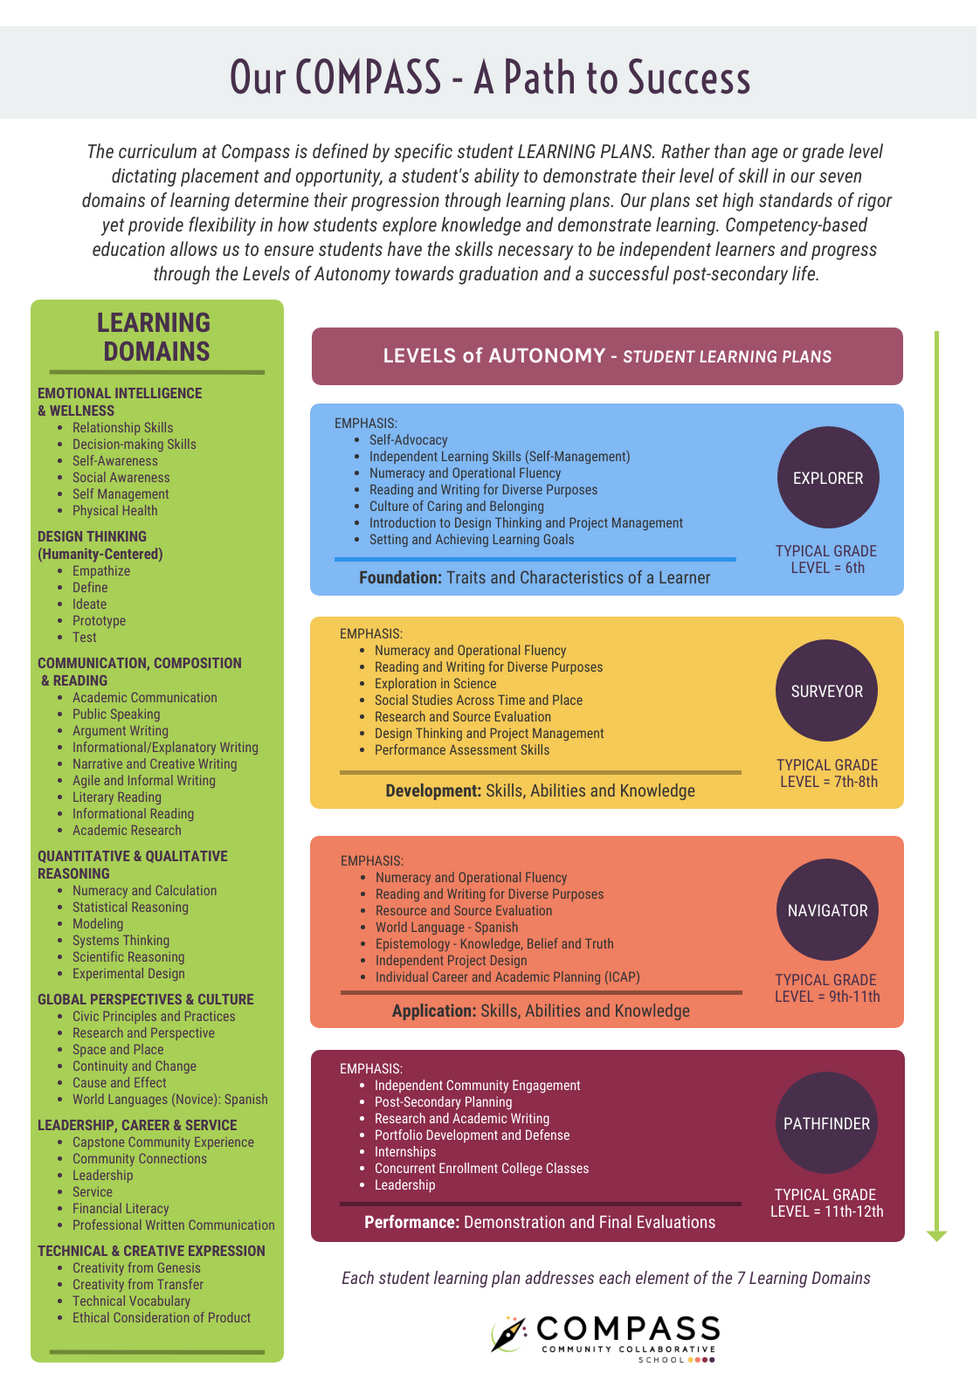 Competencies and Levels of Autonomy Graphics